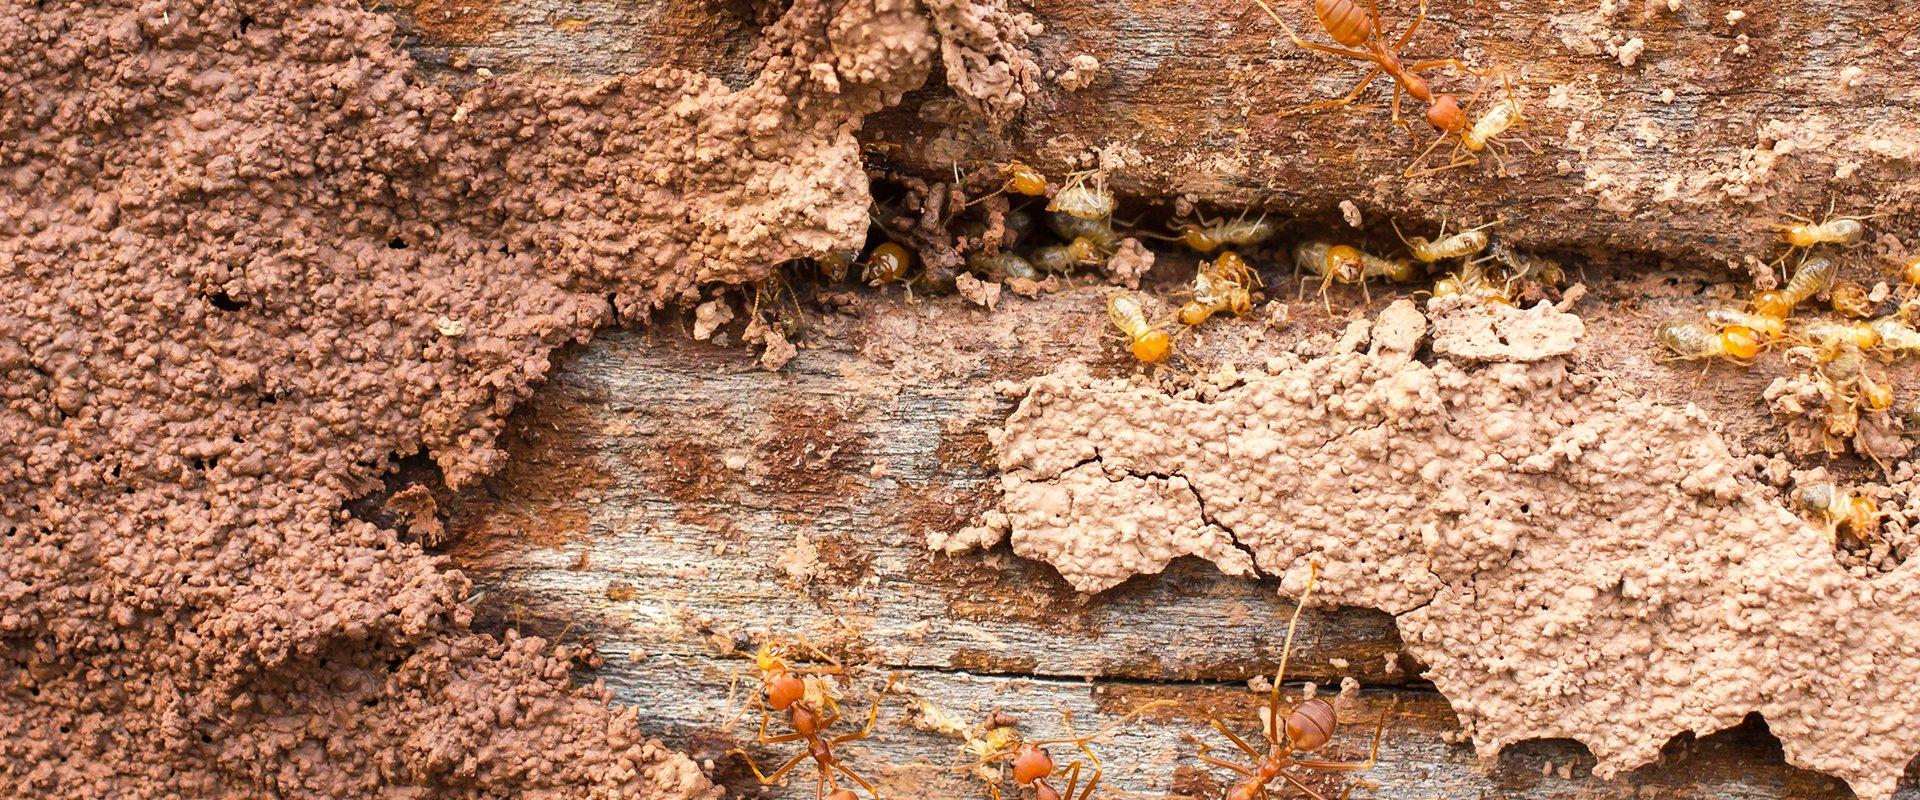 termites and red ants together on wood